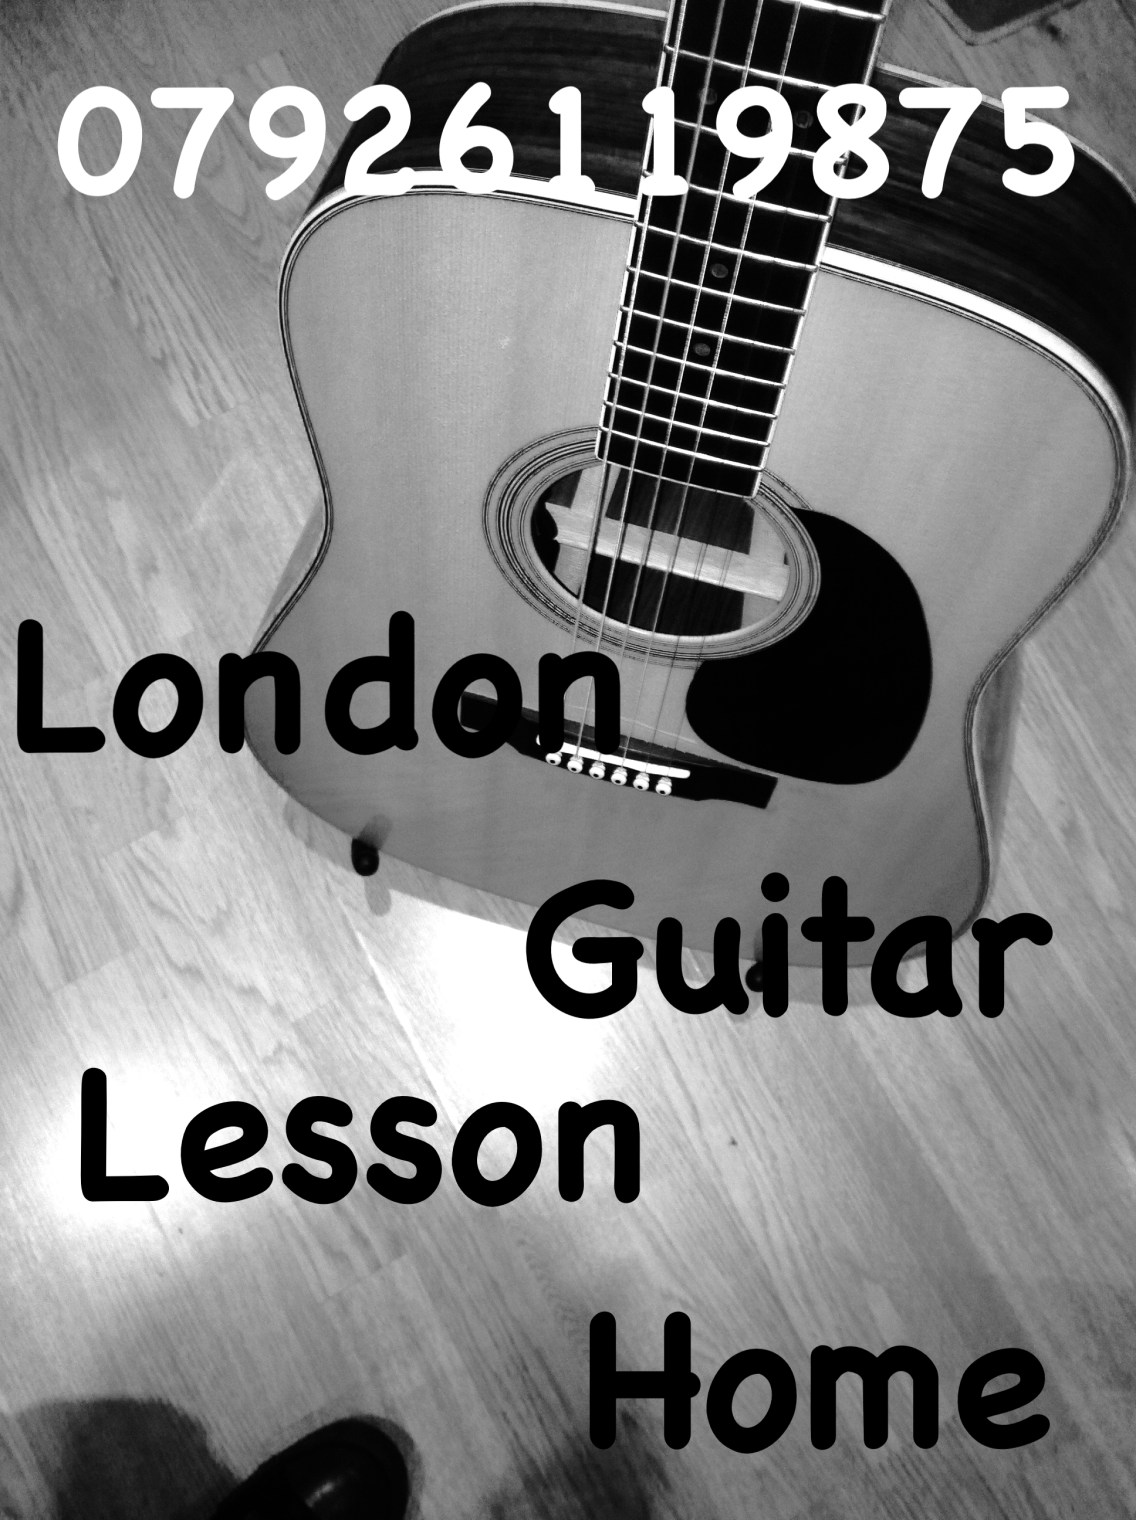 Guitar Lesson to Your Home in Kensington - Learn Guitar in Kensington to Your Home